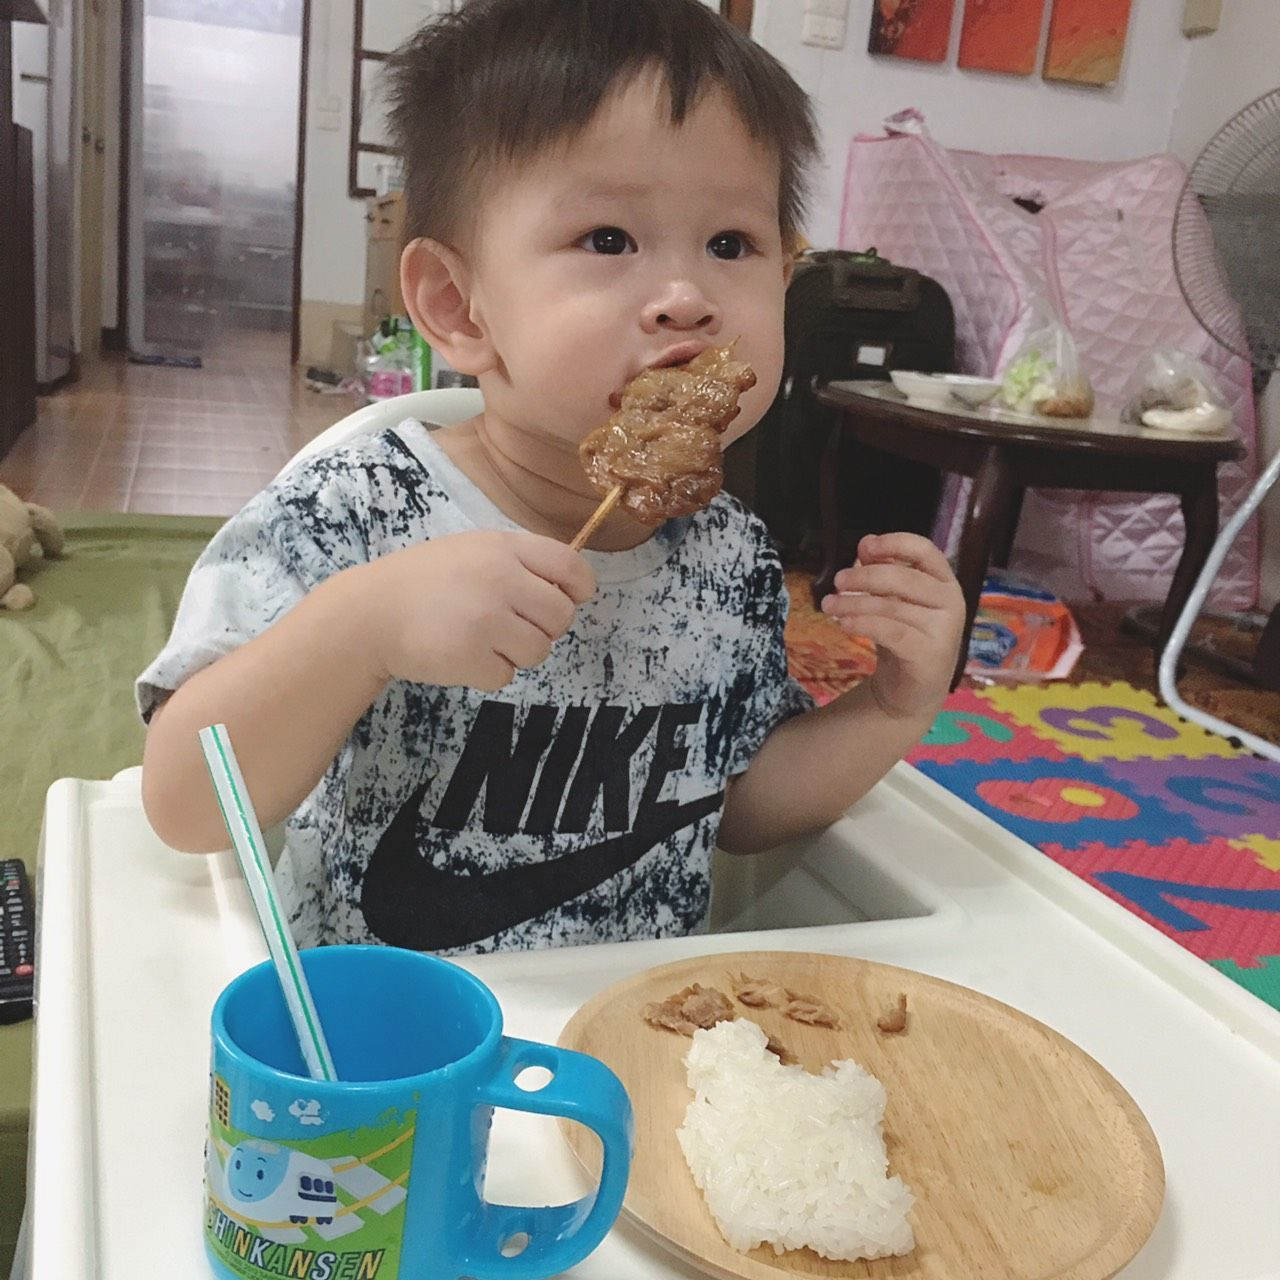 real people, food and drink, indoors, food, childhood, table, one person, cake, eating, home interior, cute, plate, lifestyles, looking at camera, sweet food, day, portrait, boys, freshness, ice cream, close-up